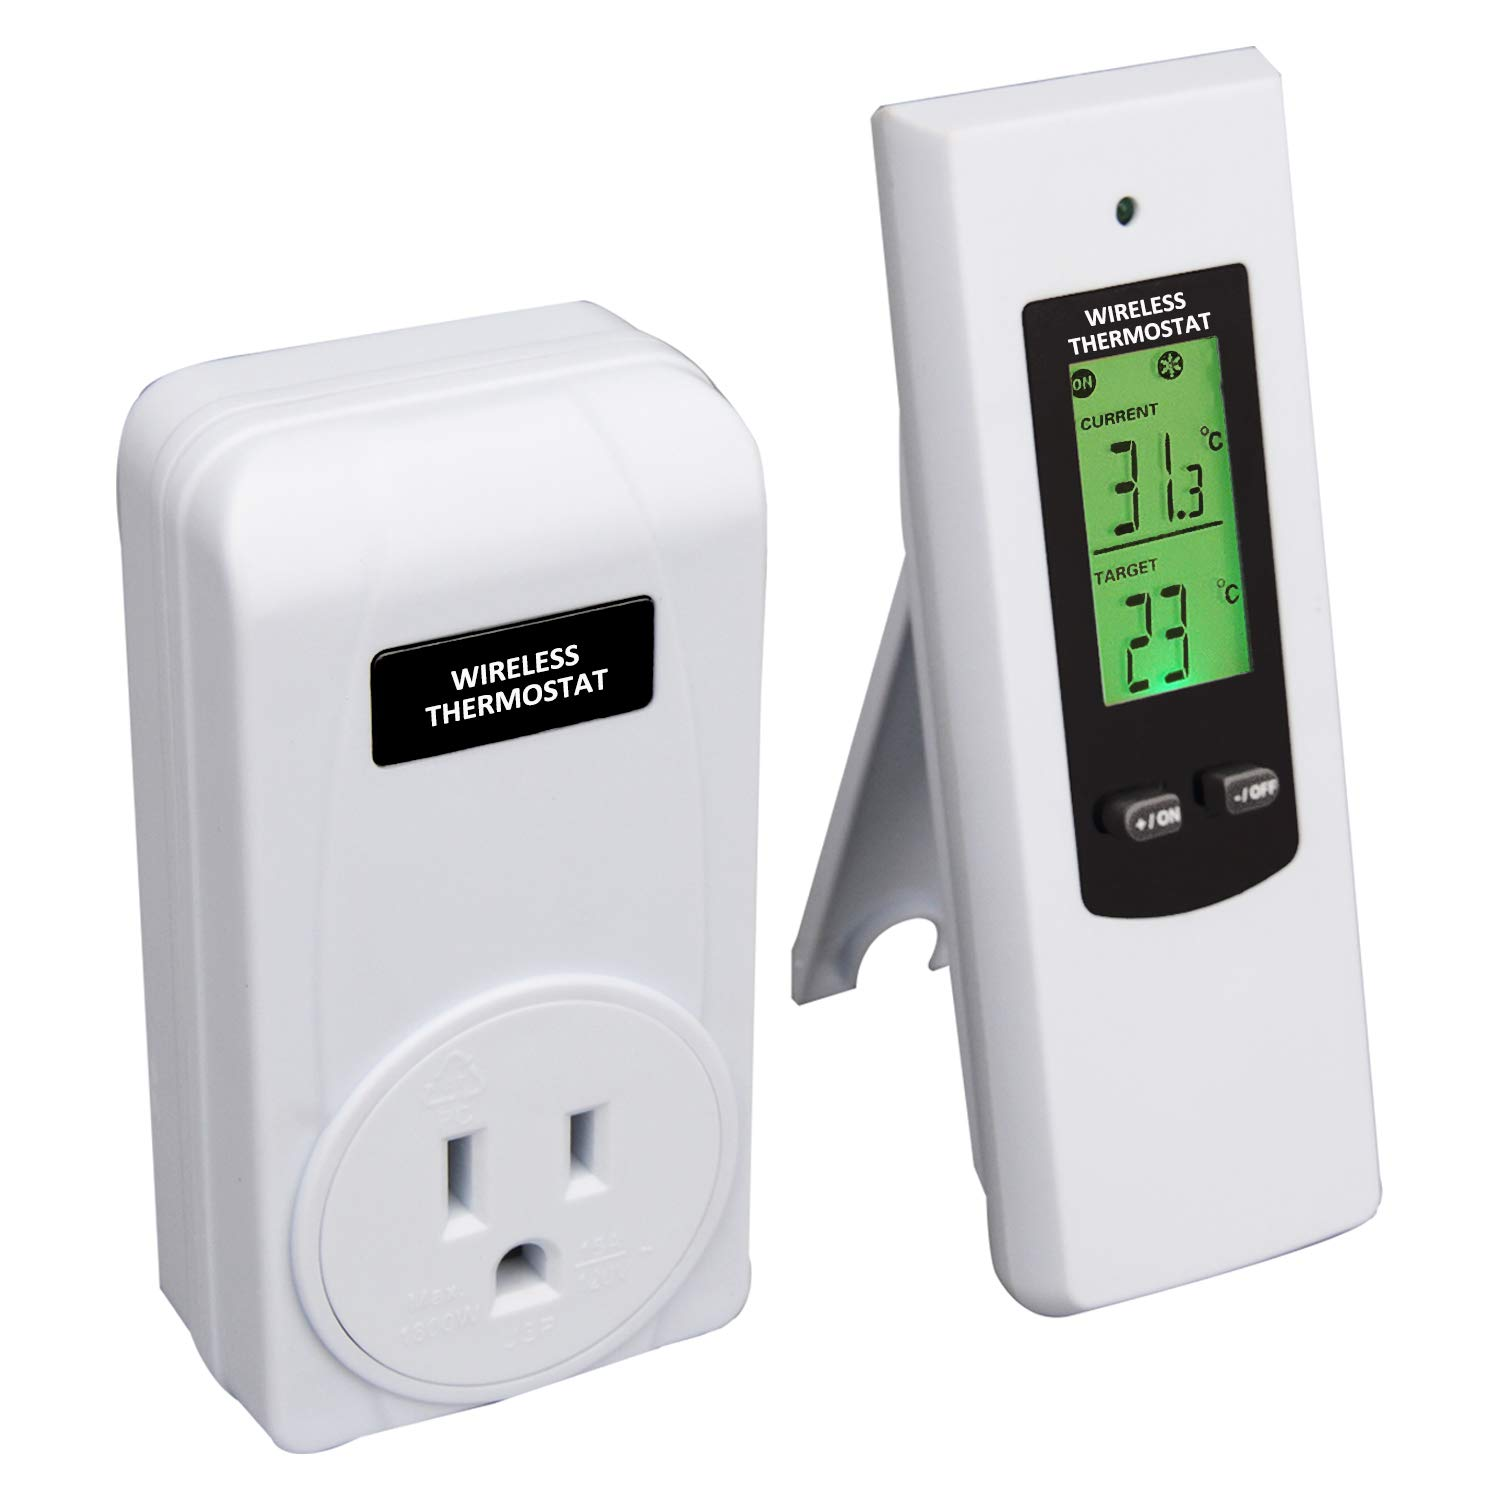 Wireless Temperature Controller,Electric Outlet Thermostat with Remote Control Built in Temp Sensor 3 Prong Plug Heating Cooling Mode (OPS100+OTS100)